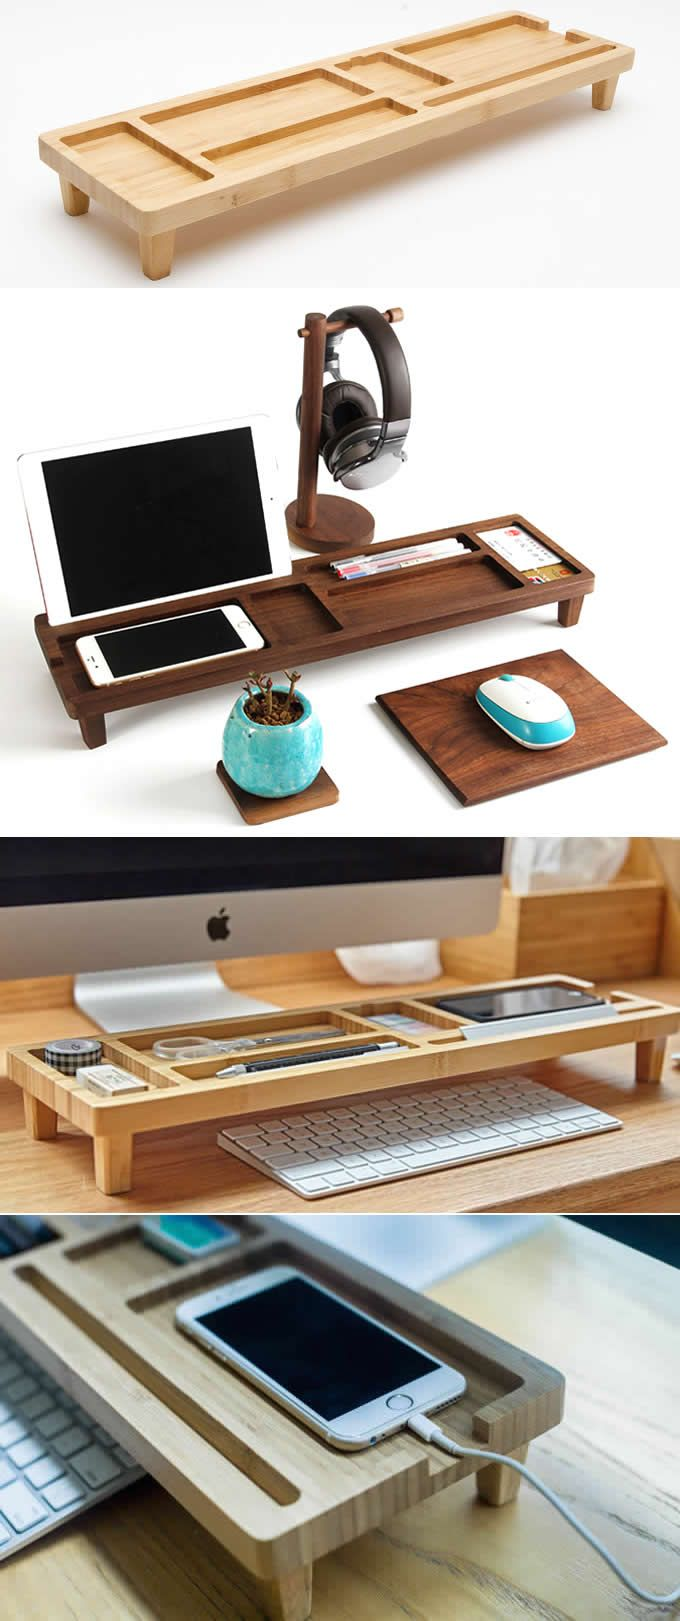 Wooden Stationery Desk Organizer Phone Ipad Stand Holder Pen Over The Keyboard